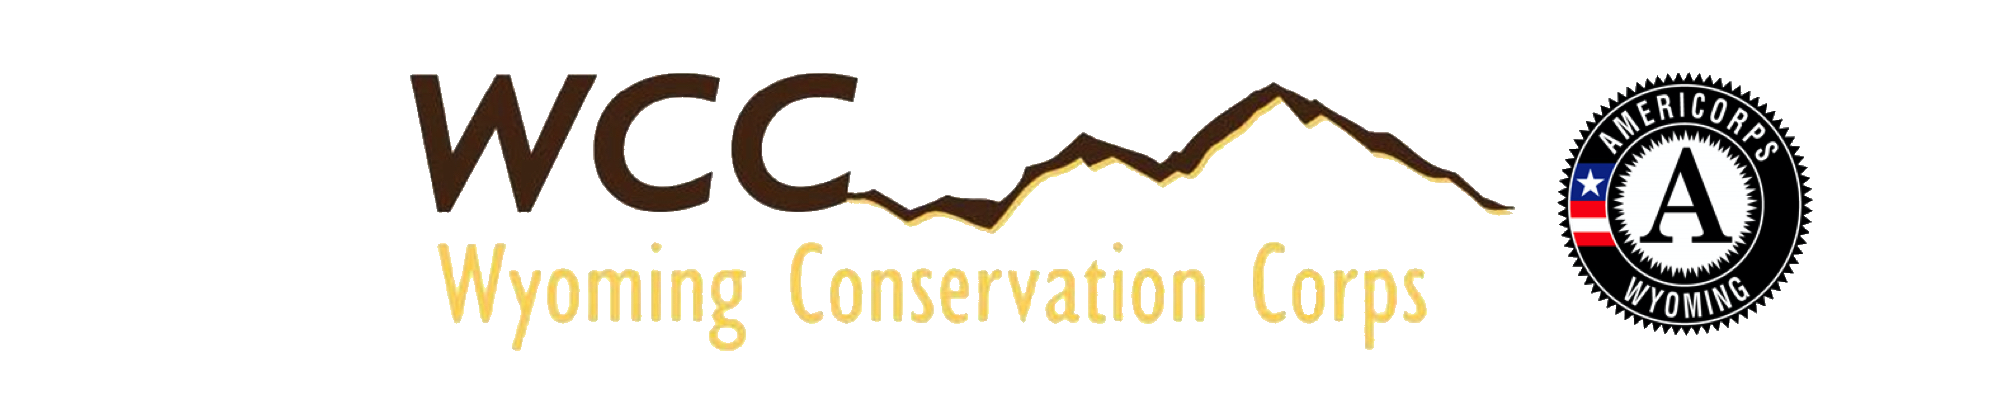 Wyoming Conservation Corps